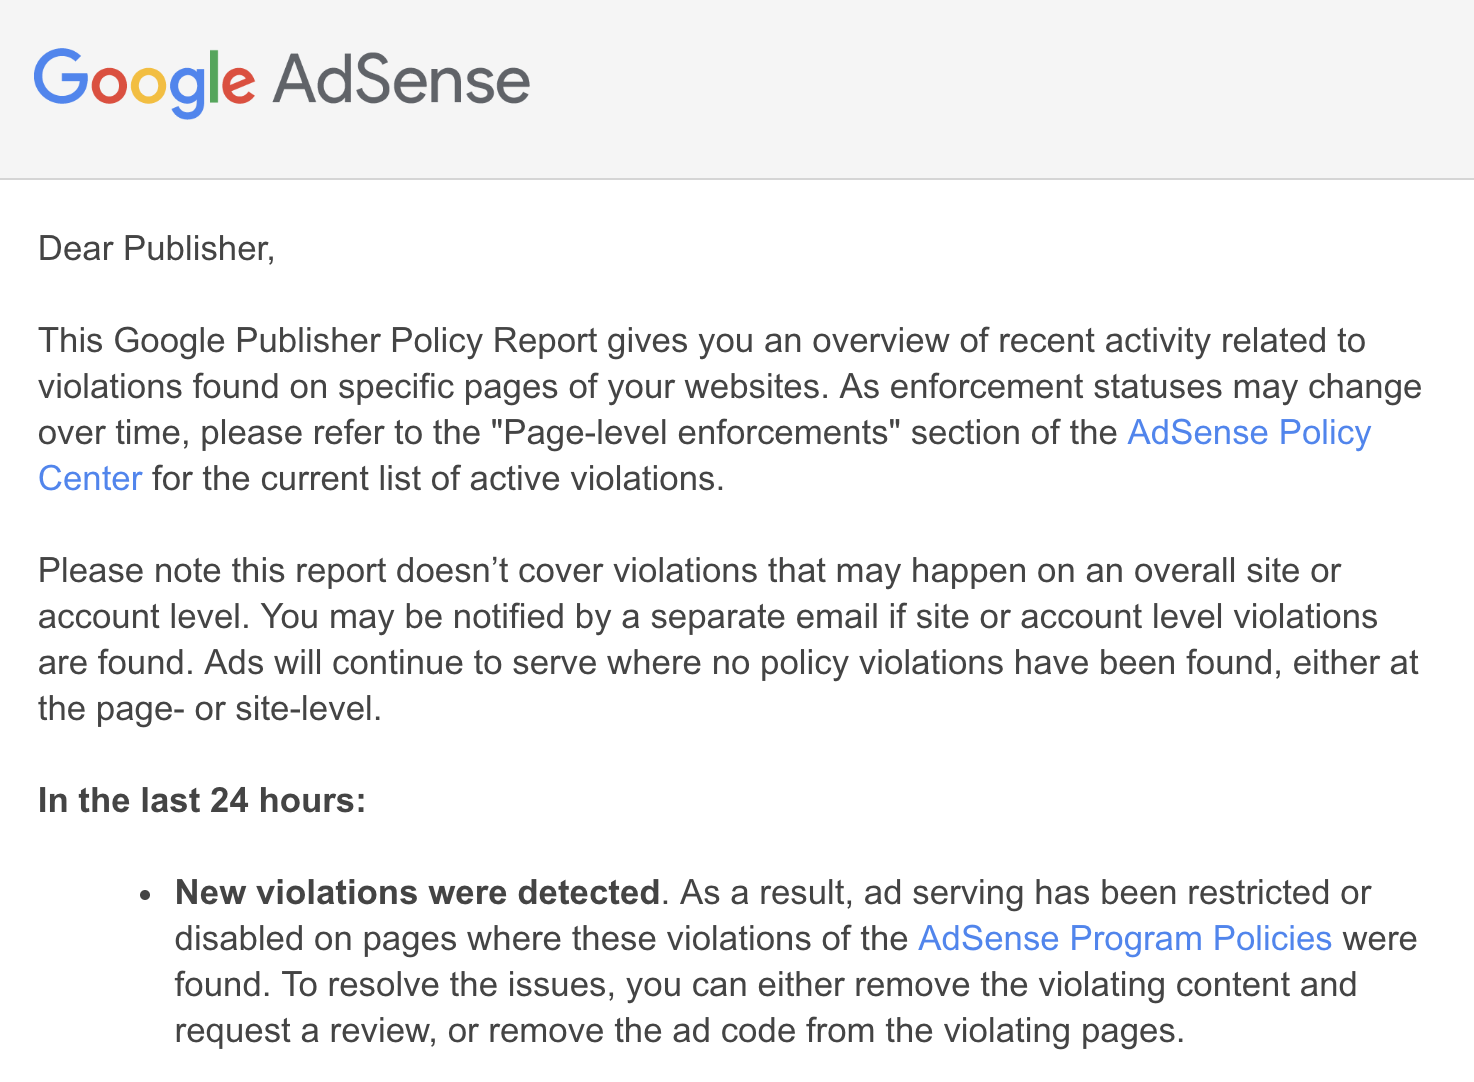 adsense policy violation email